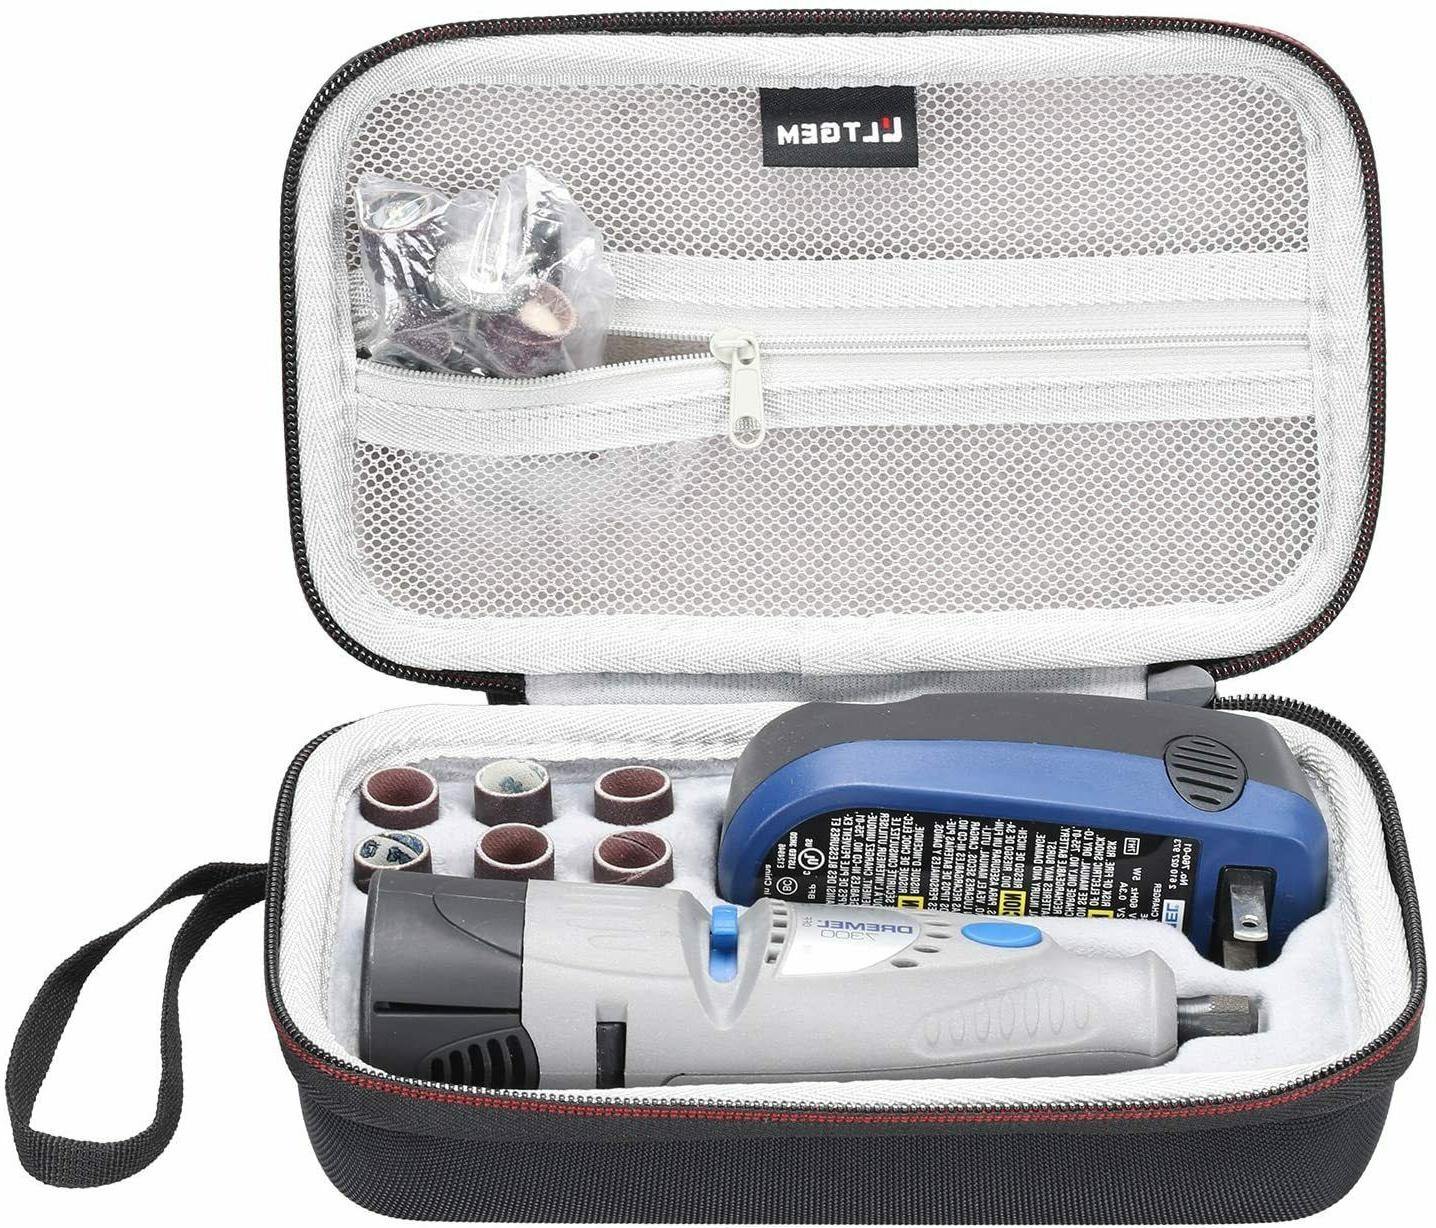 CASE 4.8-Volt Cordless Two-Speed Tool CASE ONLY